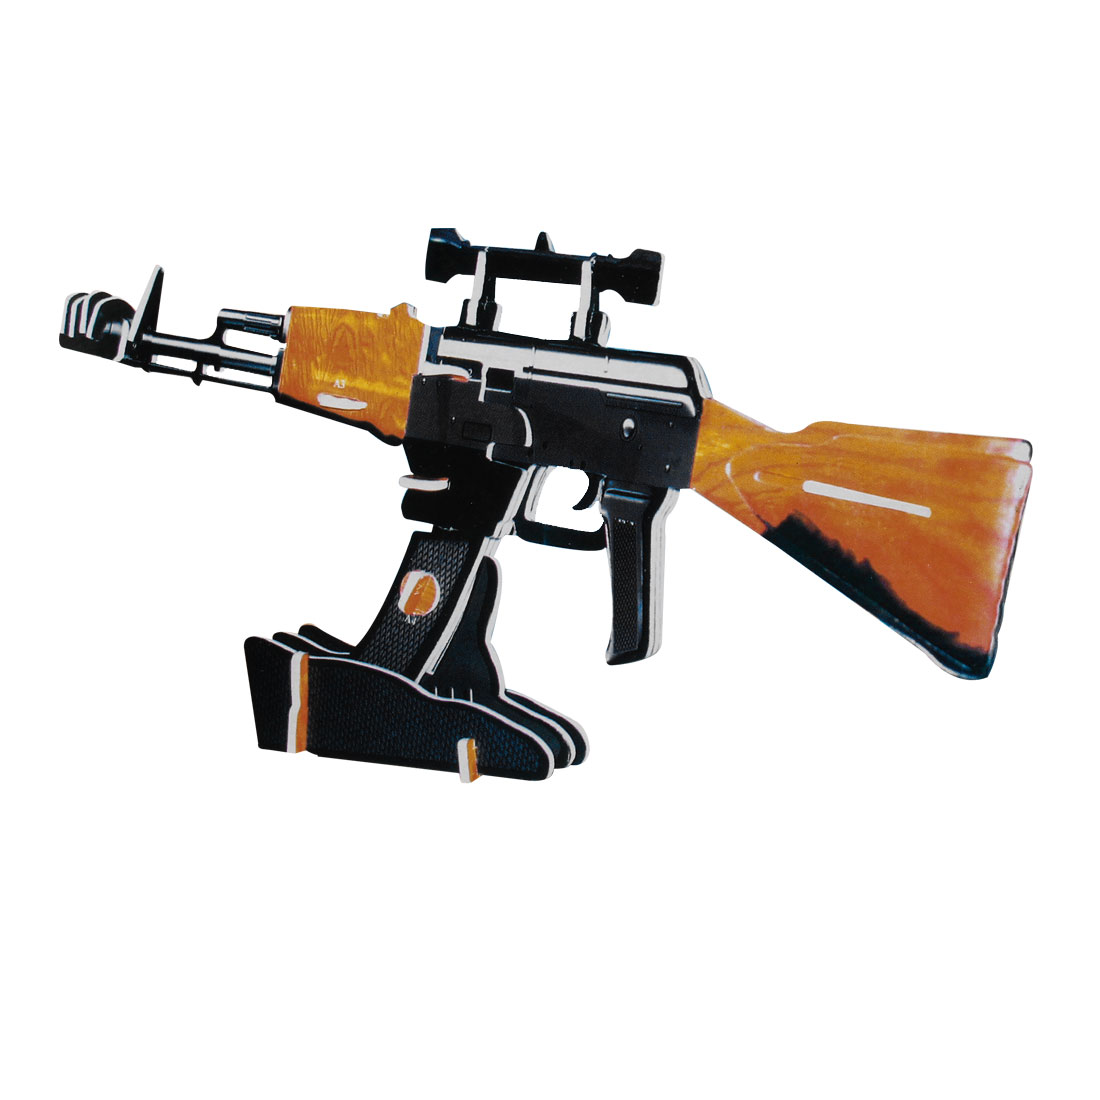 4 Sheets USM617 Bulldog AK47 Rush Rifle 3D Model Puzzle for Kid